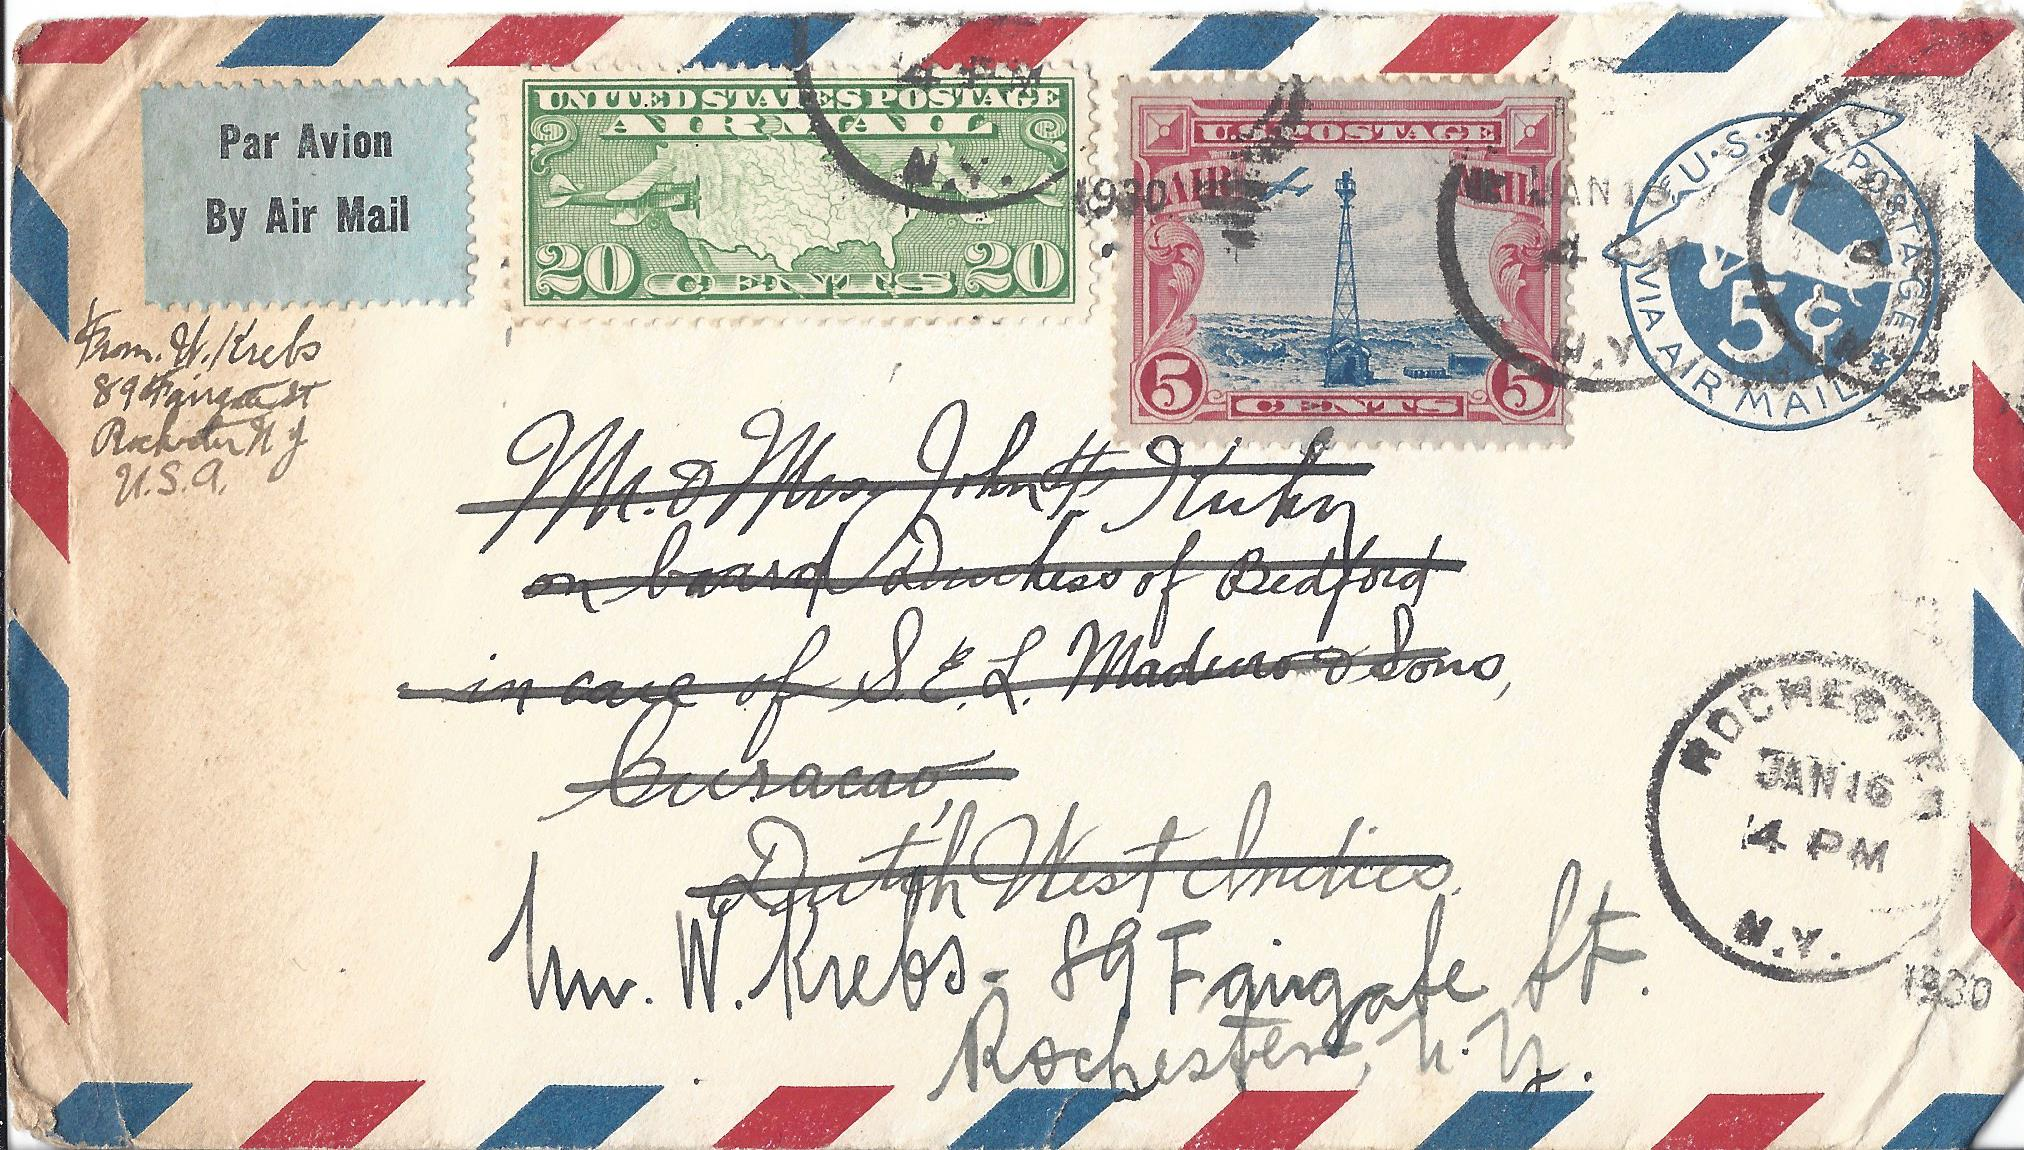 An envelope targeted at a stamp or cover collector – which arrived too late at its destination and got routed back to the sender